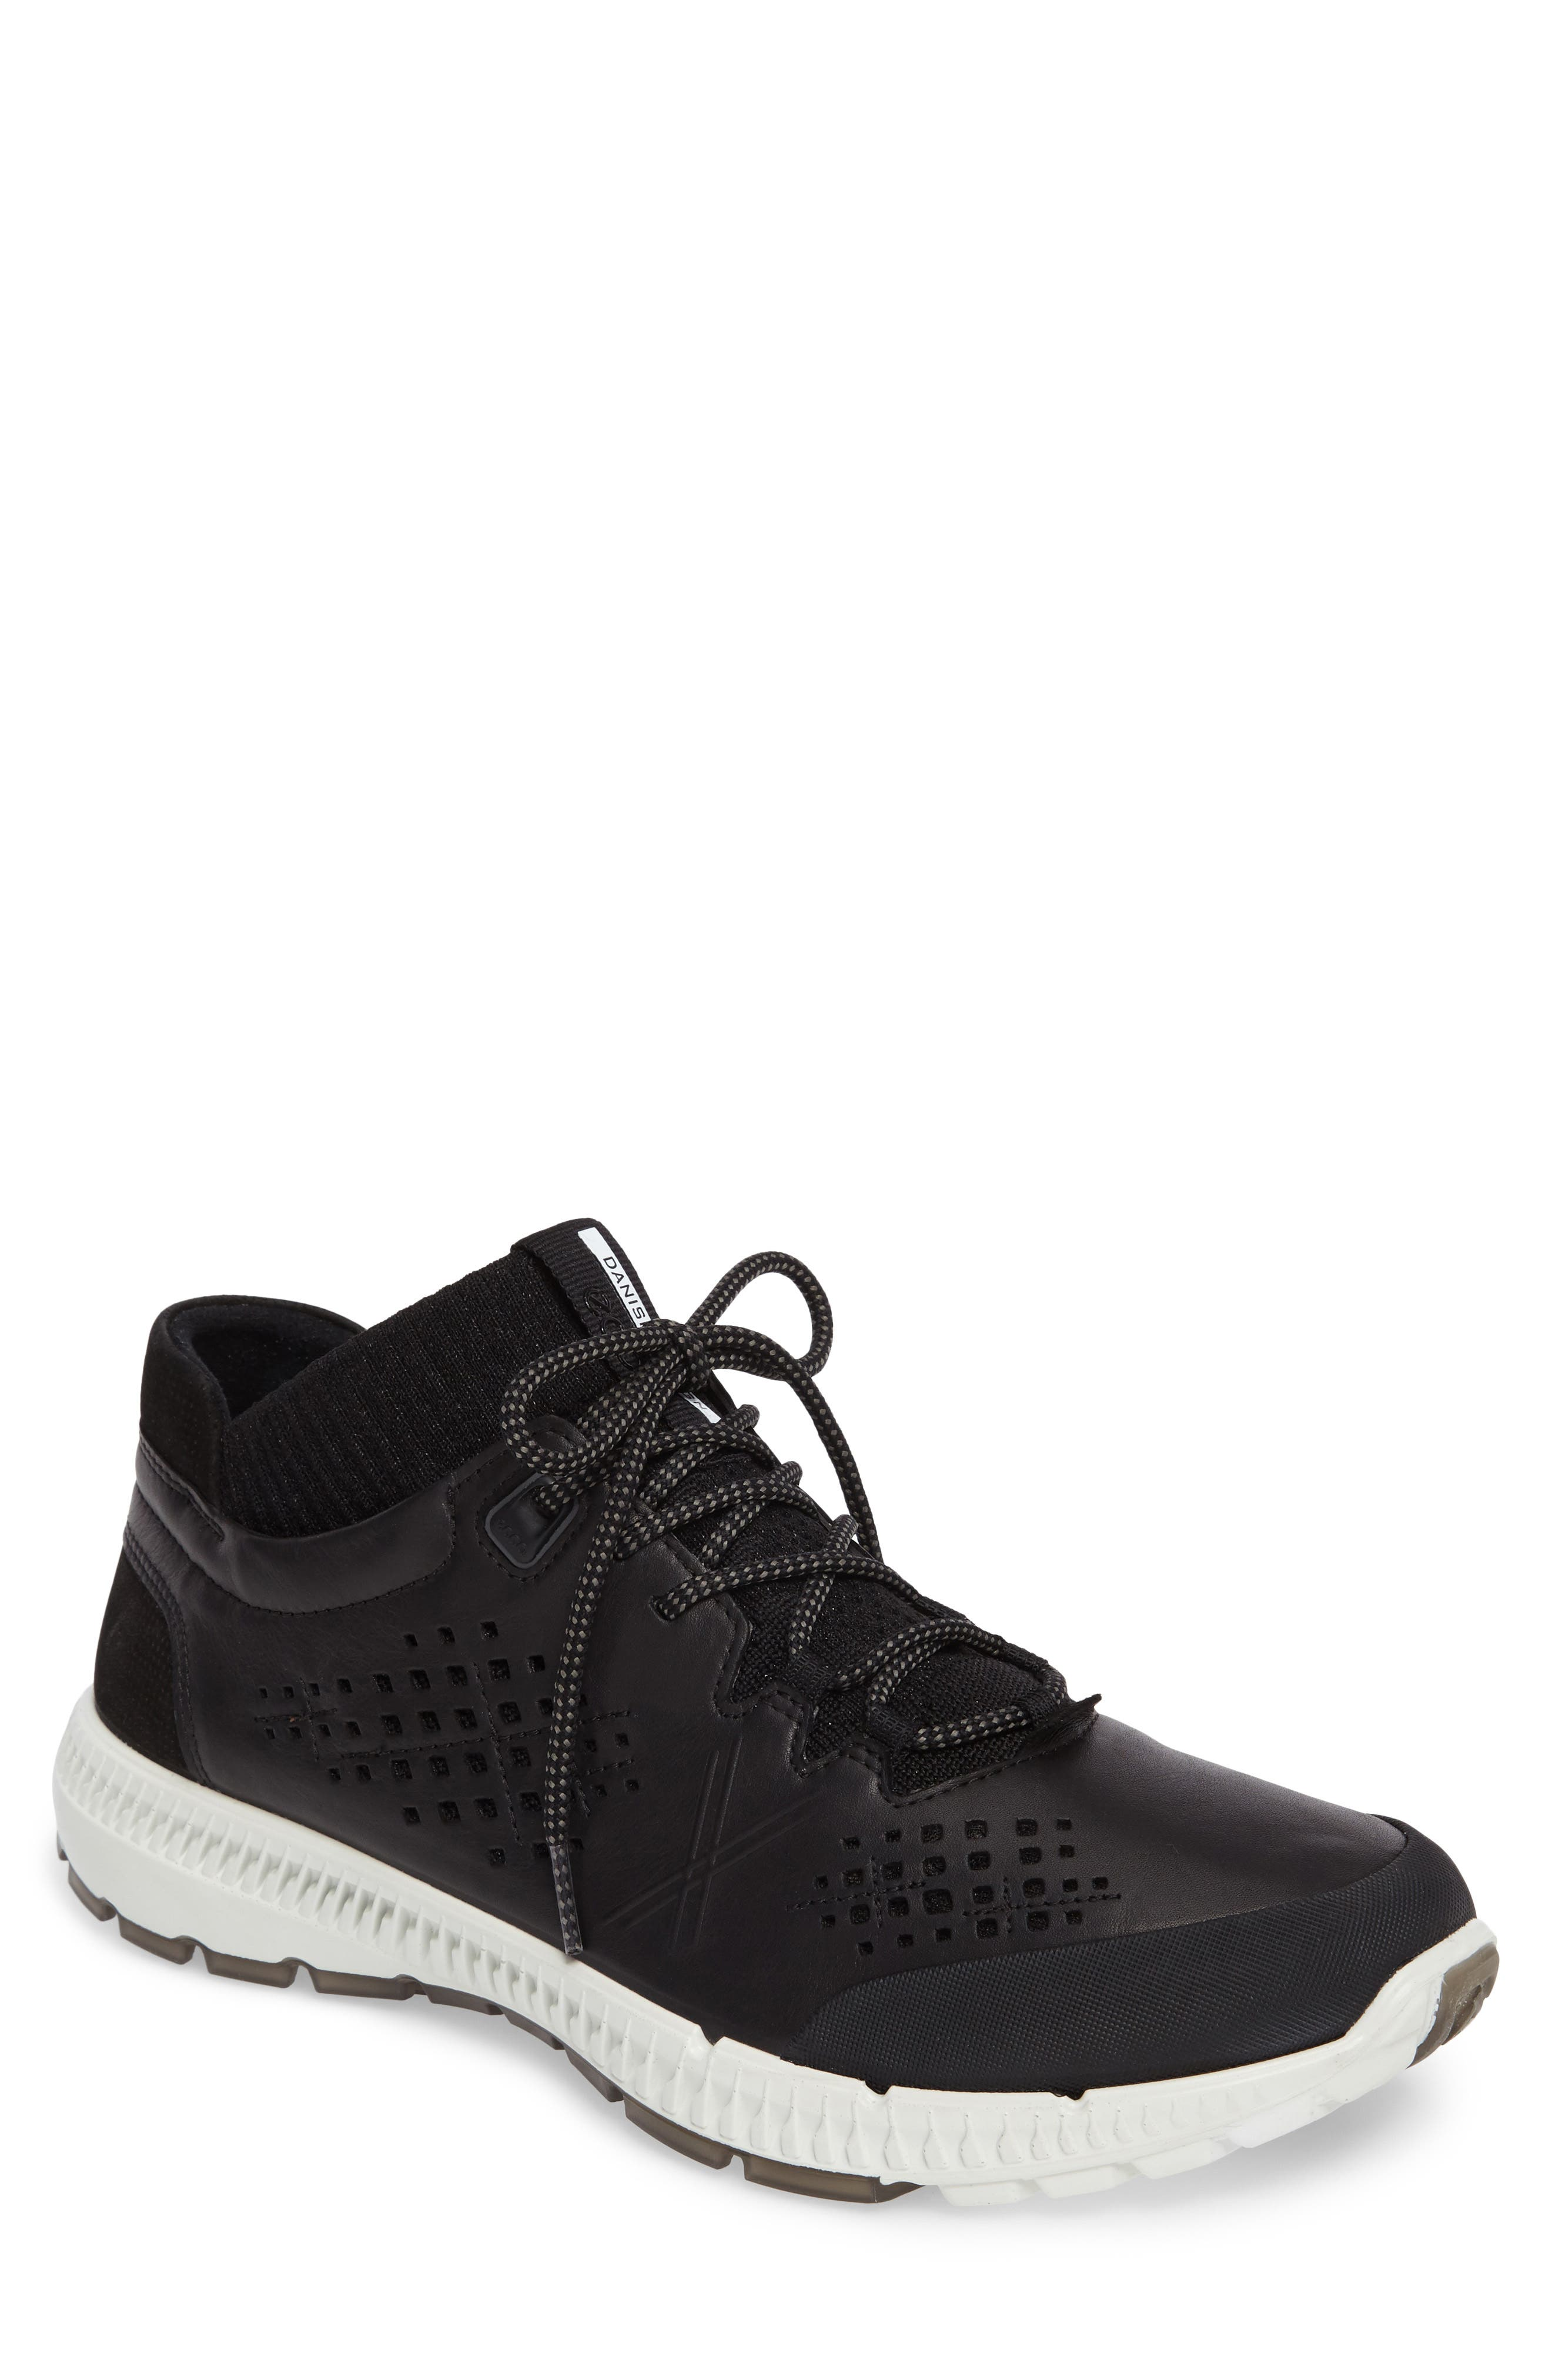 Intrinsic Mid Sneaker,                         Main,                         color, Black Leather